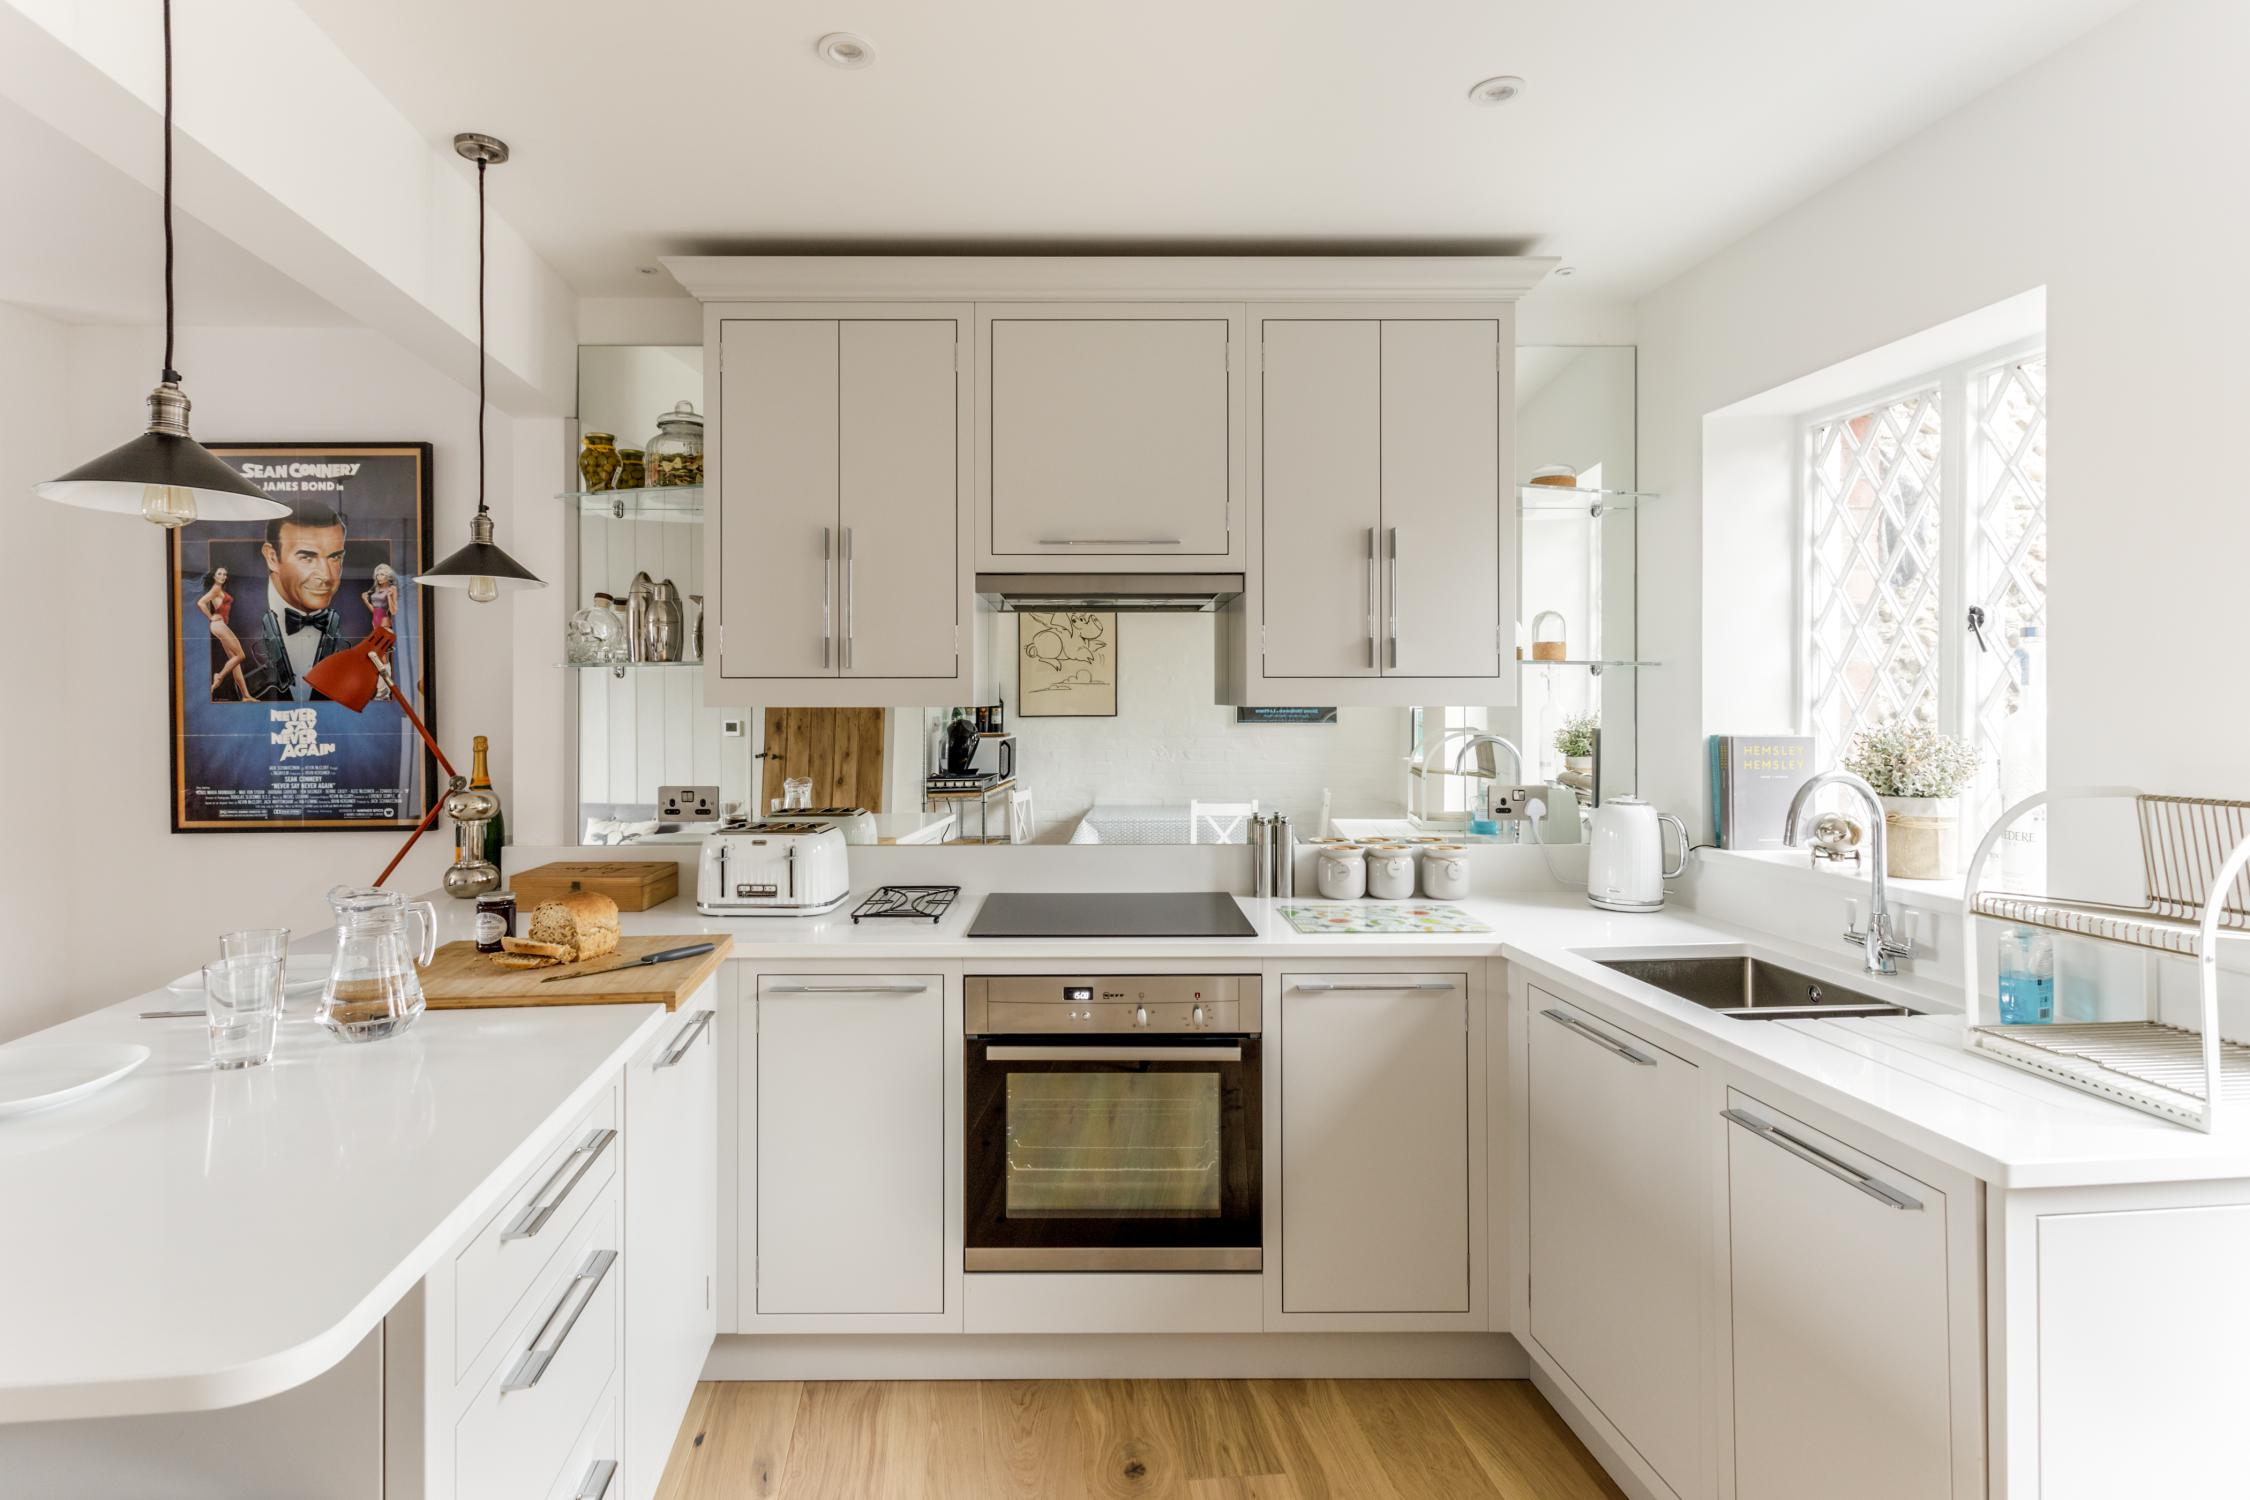 Worthing Builders-ExtraOrdinaryRooms-Arundel renovation hand made kitchen.jpg